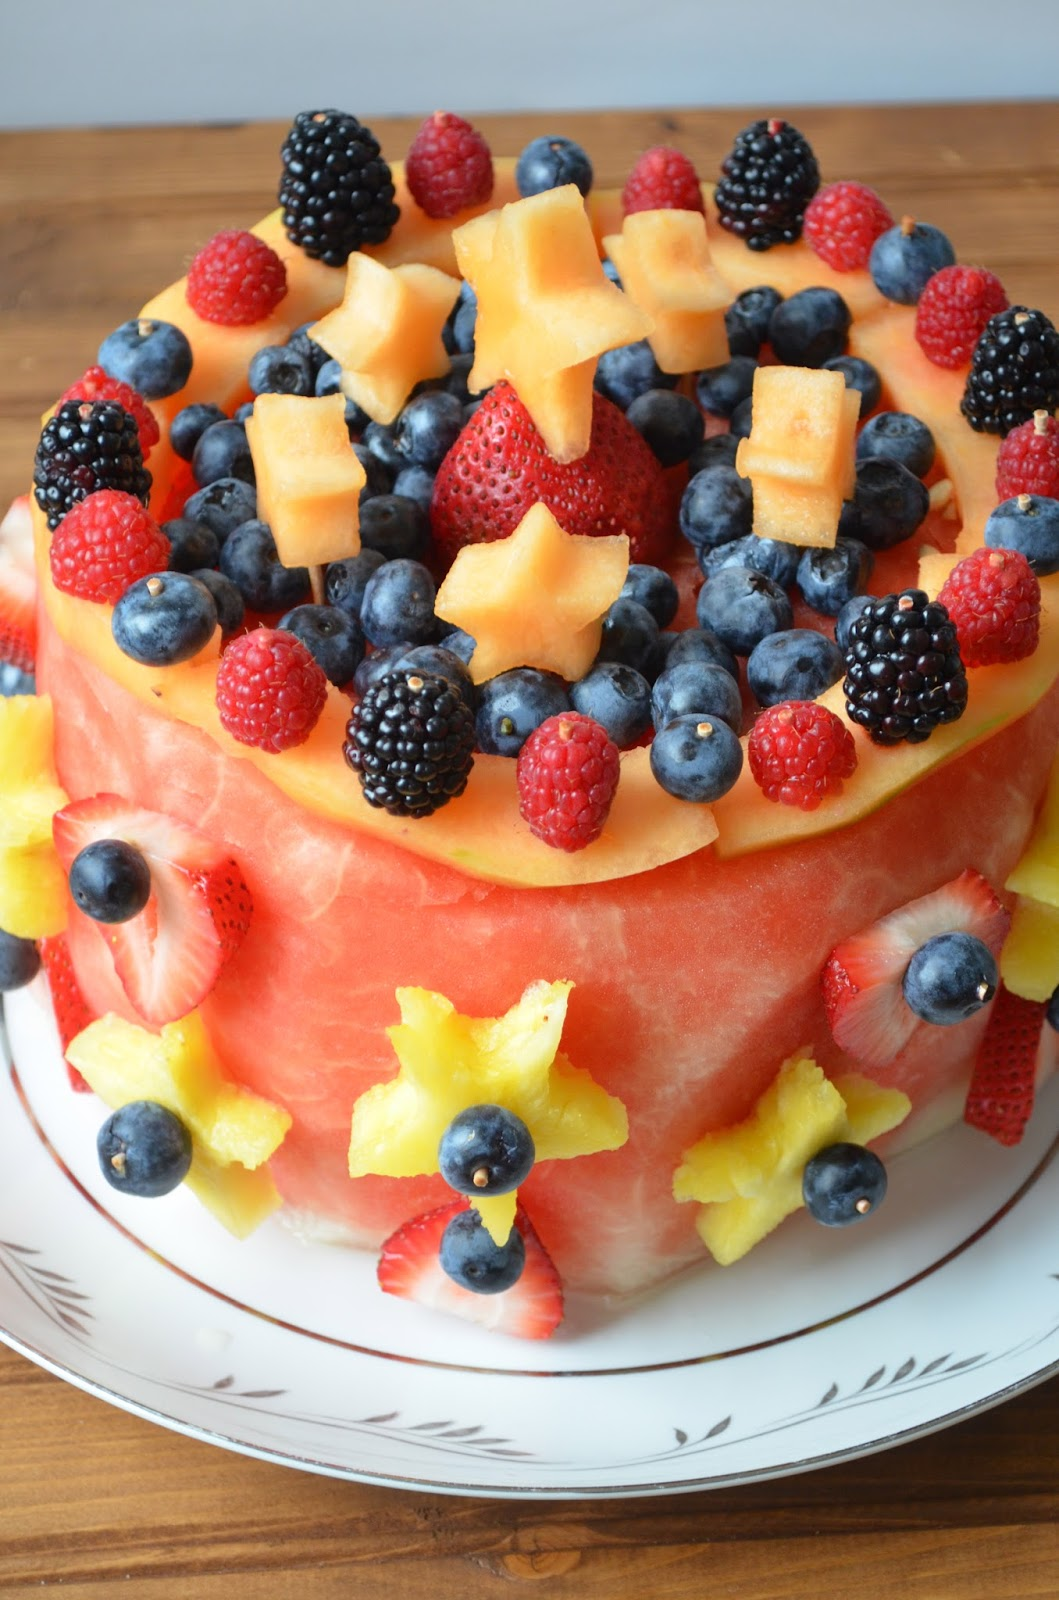 Birthday Cake Decorated With Fruits : The Savvy Kitchen: Raw Fruit Cake